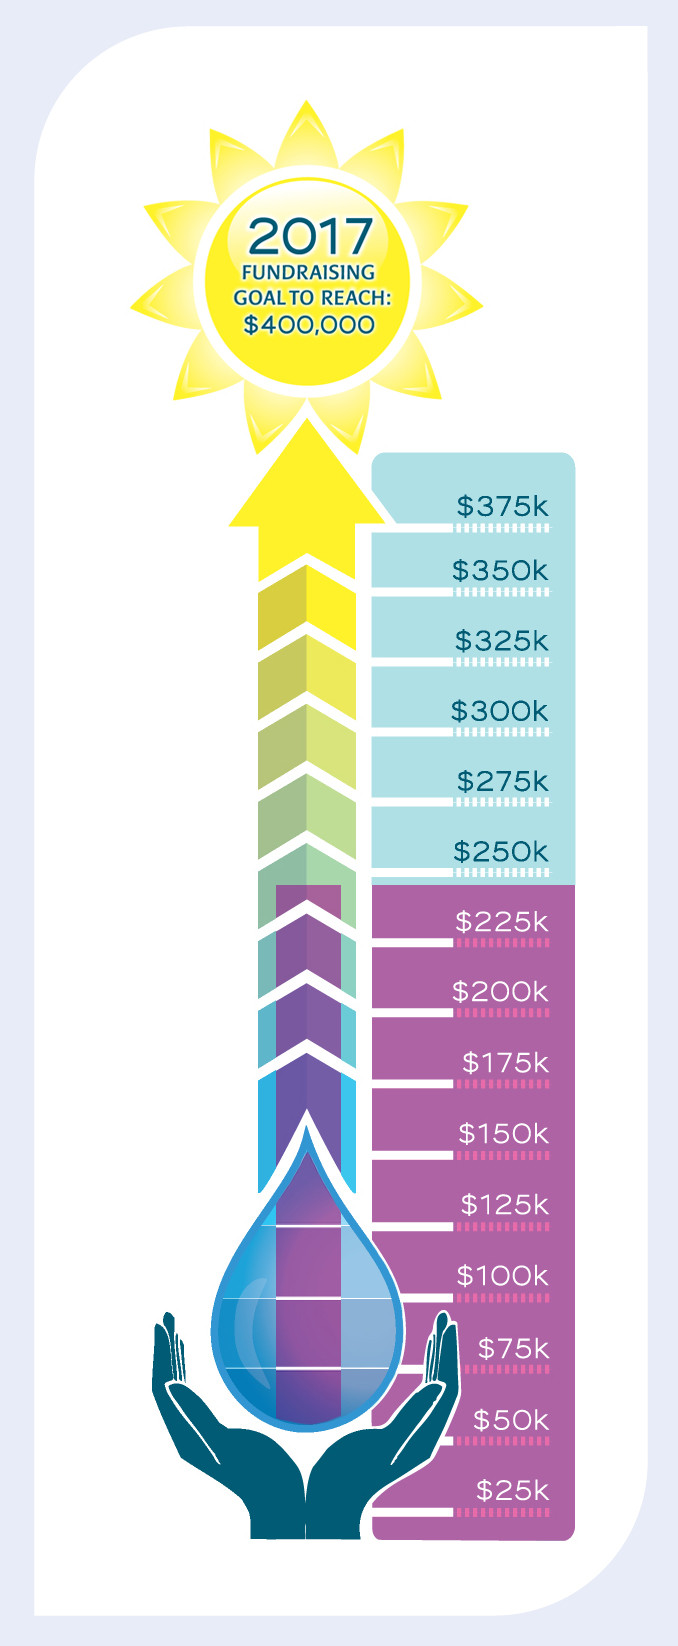 Fundraising-o-Meter showing $244k raised out of $400k goal.